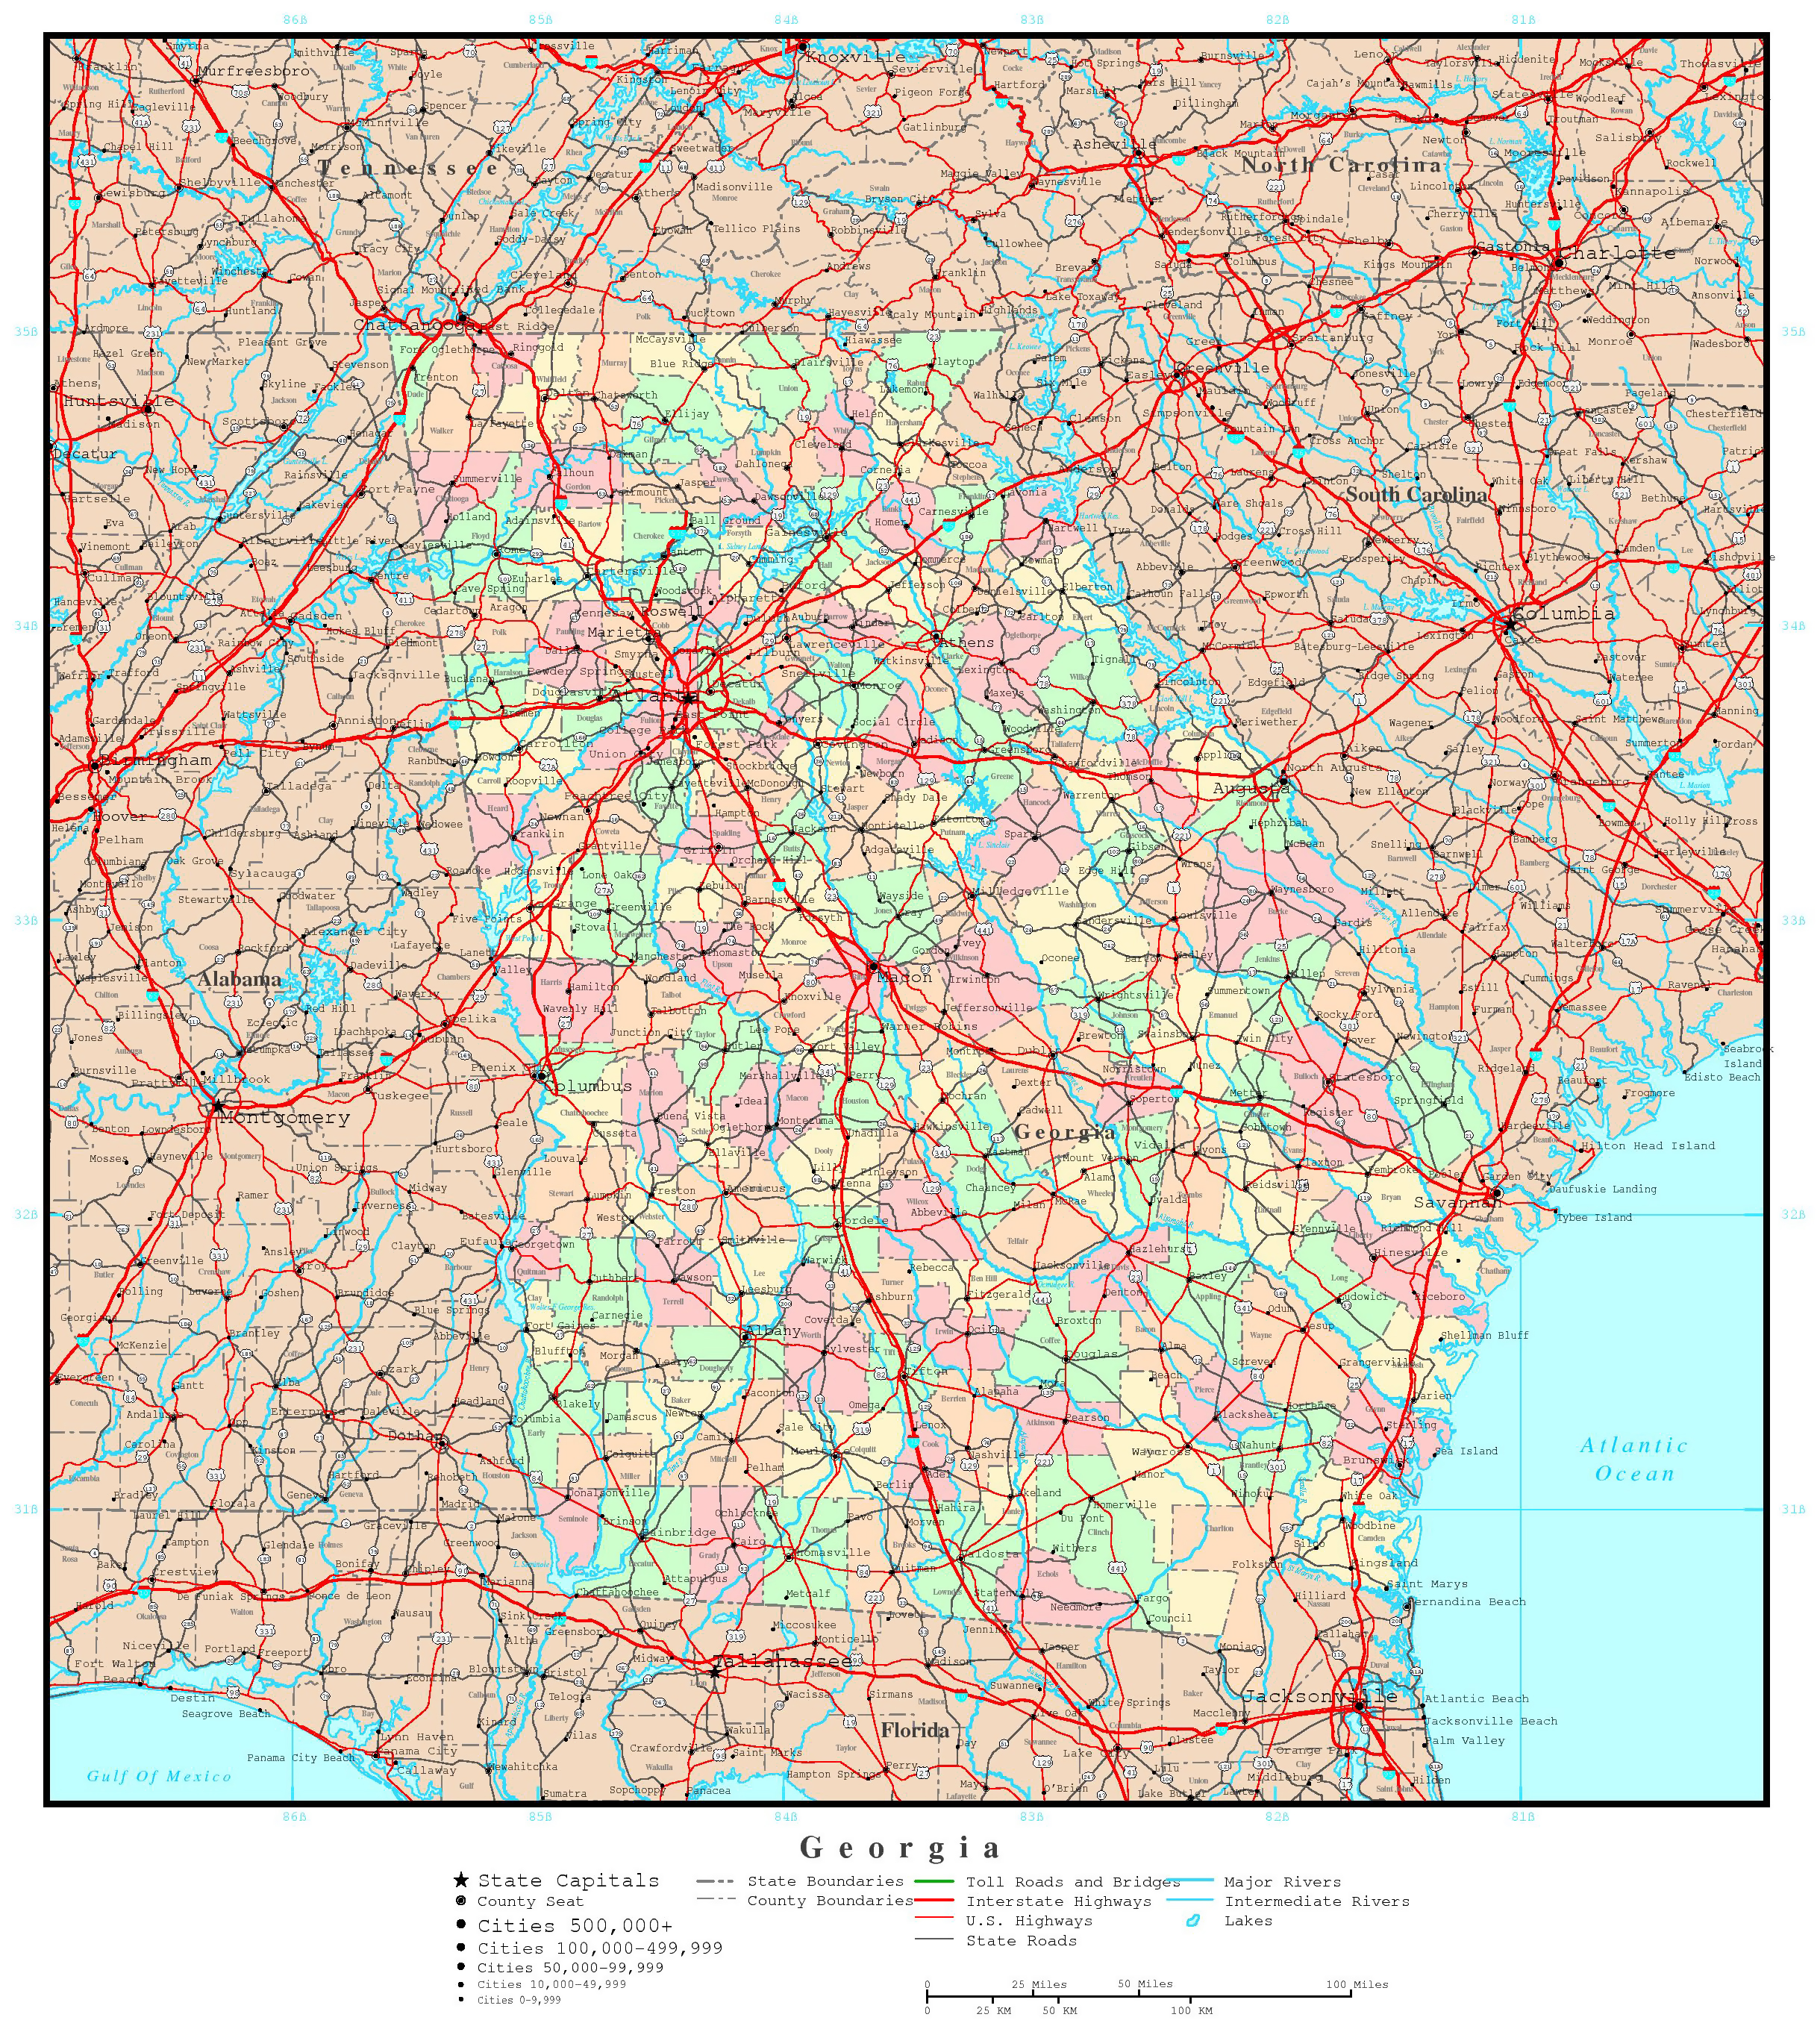 Large administrative map of Georgia state with roads highways and